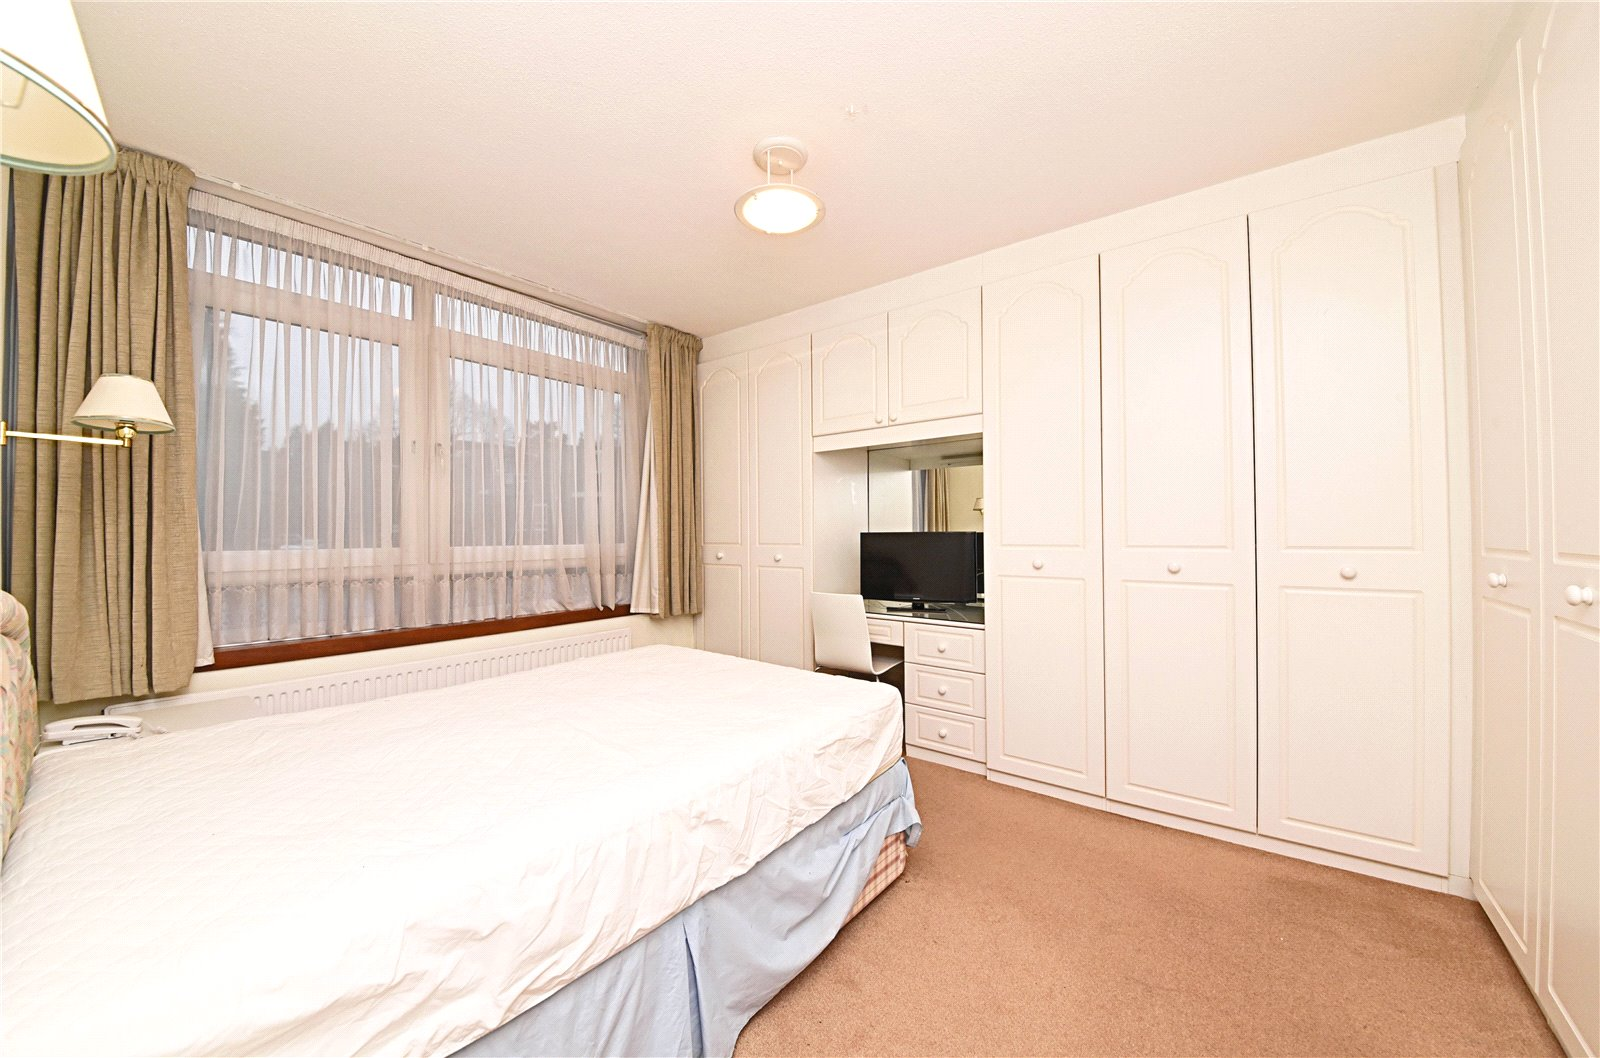 2 bed apartment for sale in Hendon, NW4 1RB  - Property Image 3